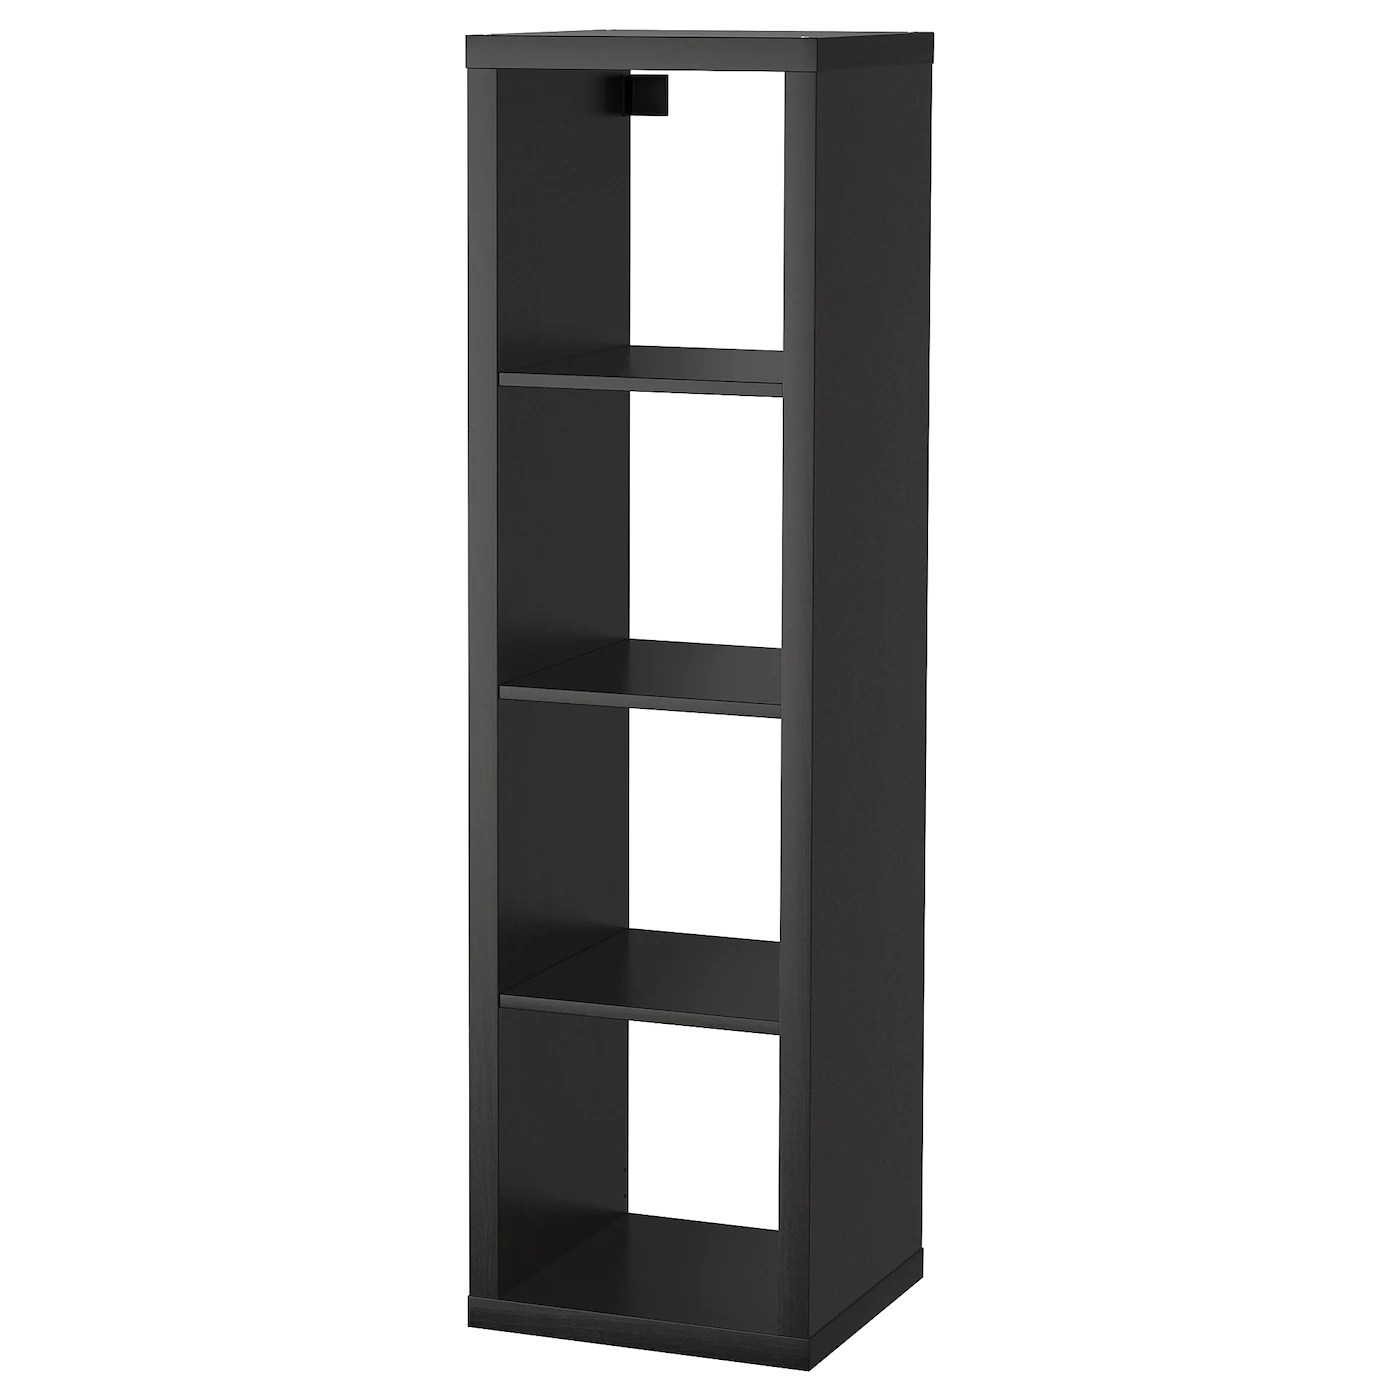 Ikea Kallax Cd Storage Kallax Shelving Unit Black Brown